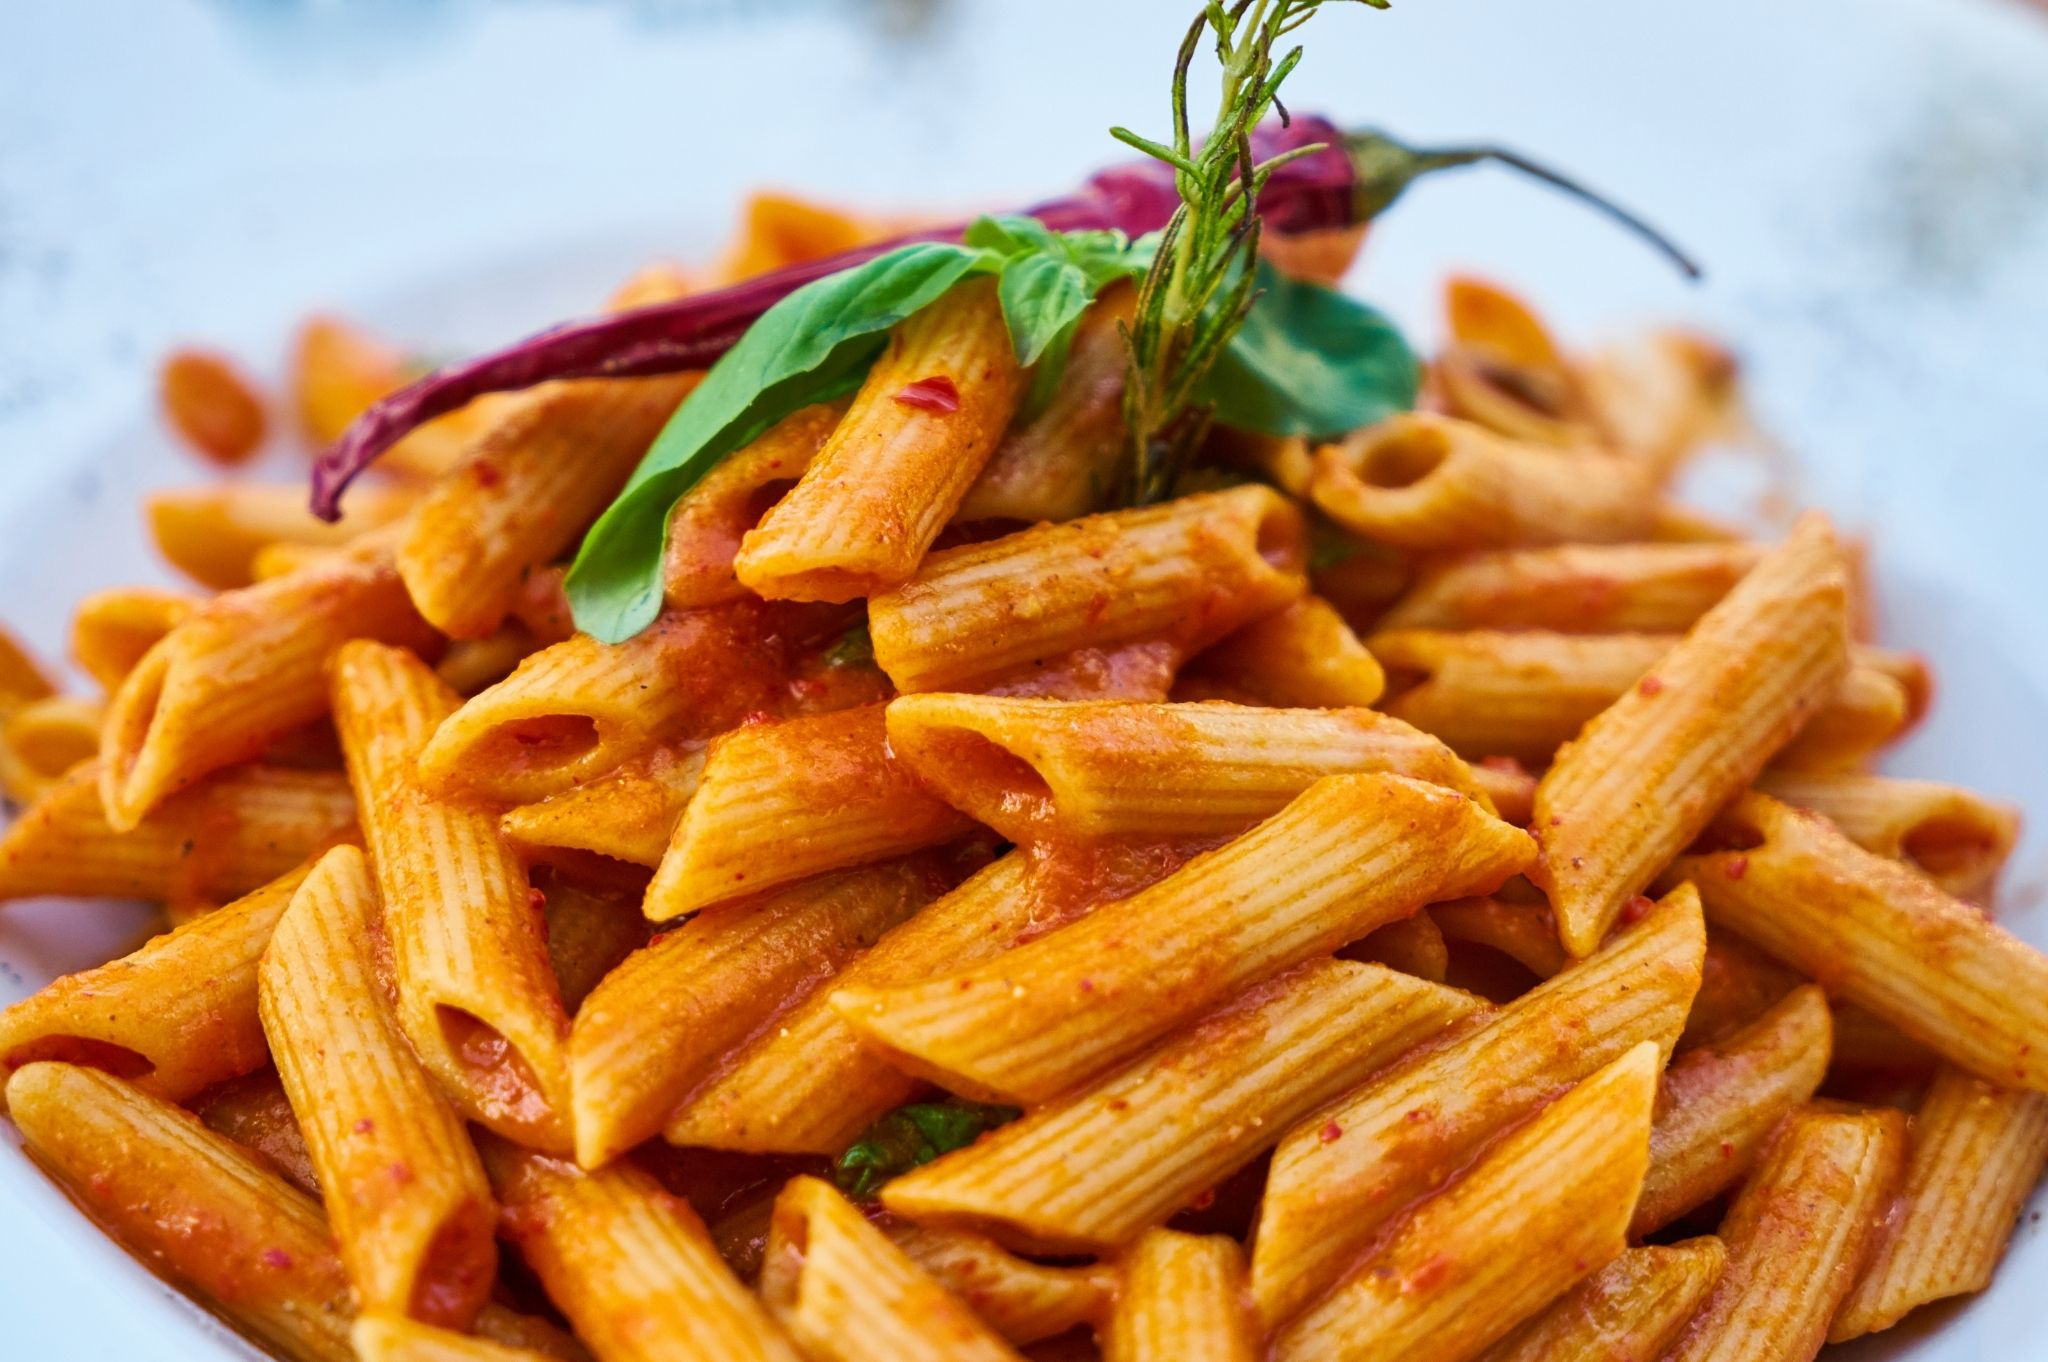 Image of pasta meal